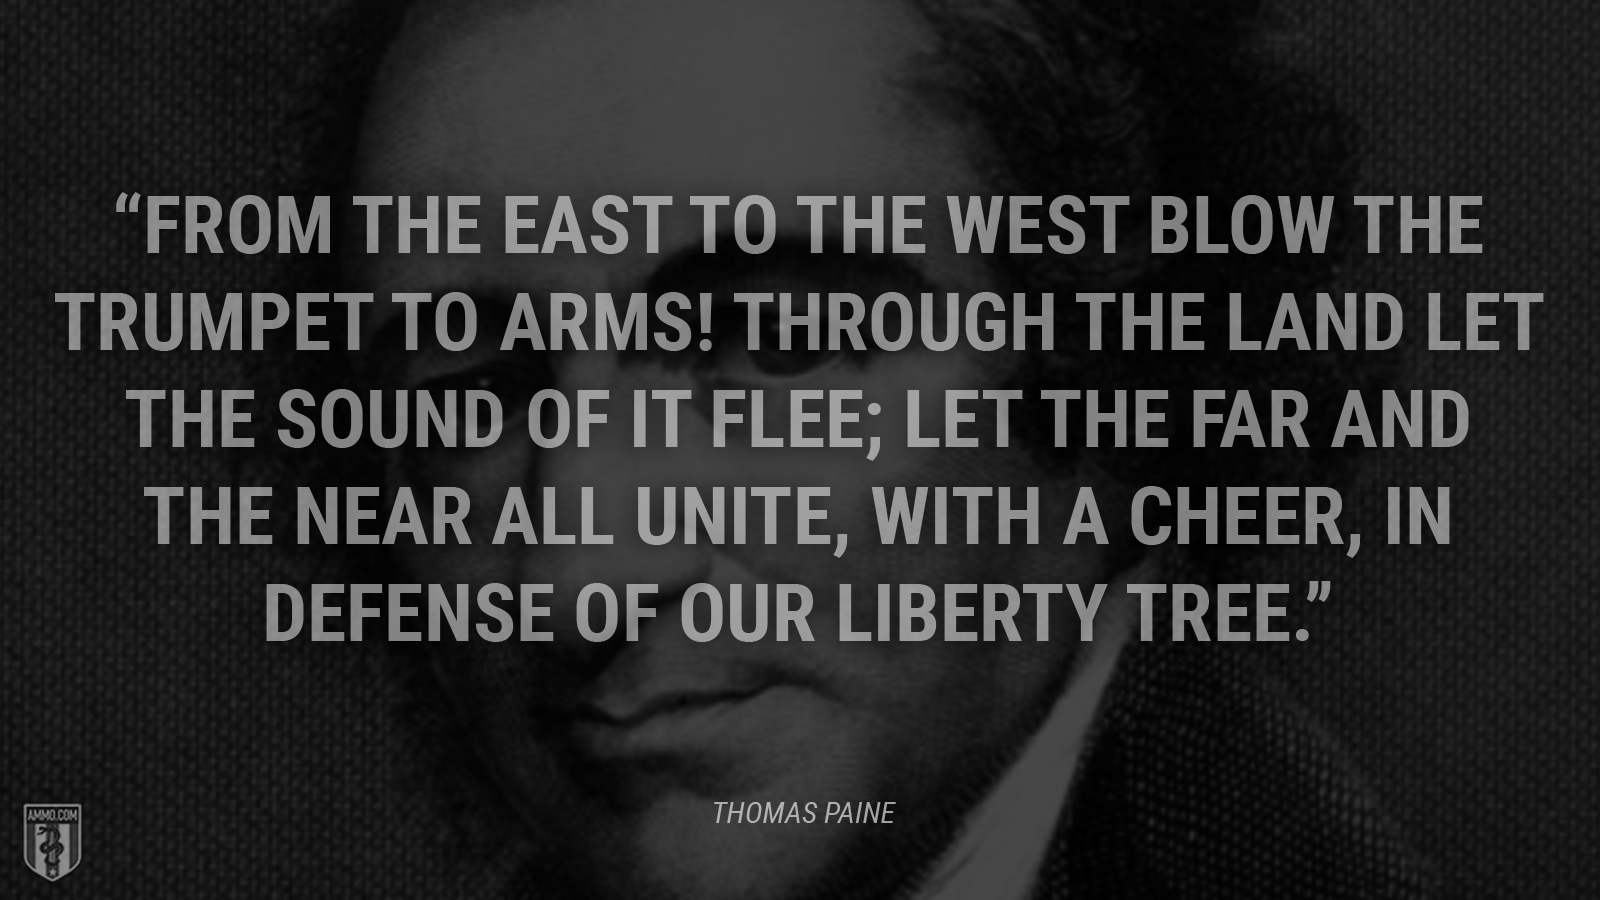 """From the east to the west blow the trumpet to arms! Through the land let the sound of it flee; Let the far and the near all unite, with a cheer, In defense of our Liberty Tree."" - Thomas Paine"